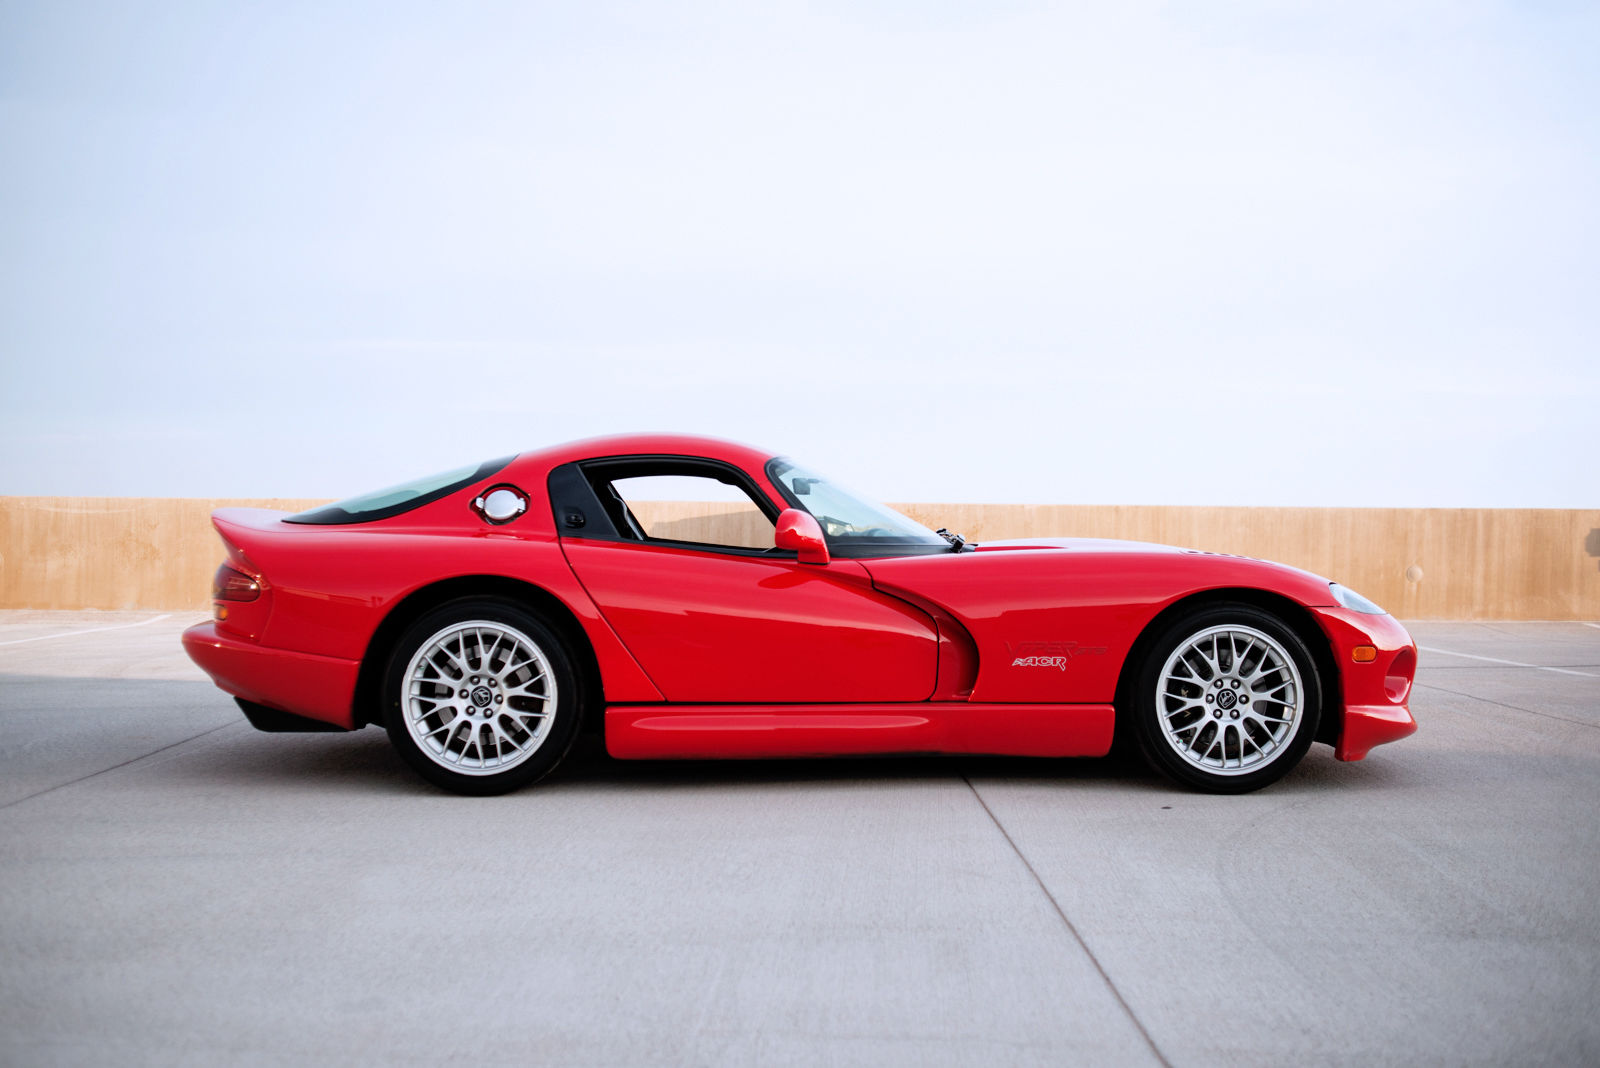 supercharged 2000 dodge viper gts acr shows up on ebay carscoops. Black Bedroom Furniture Sets. Home Design Ideas